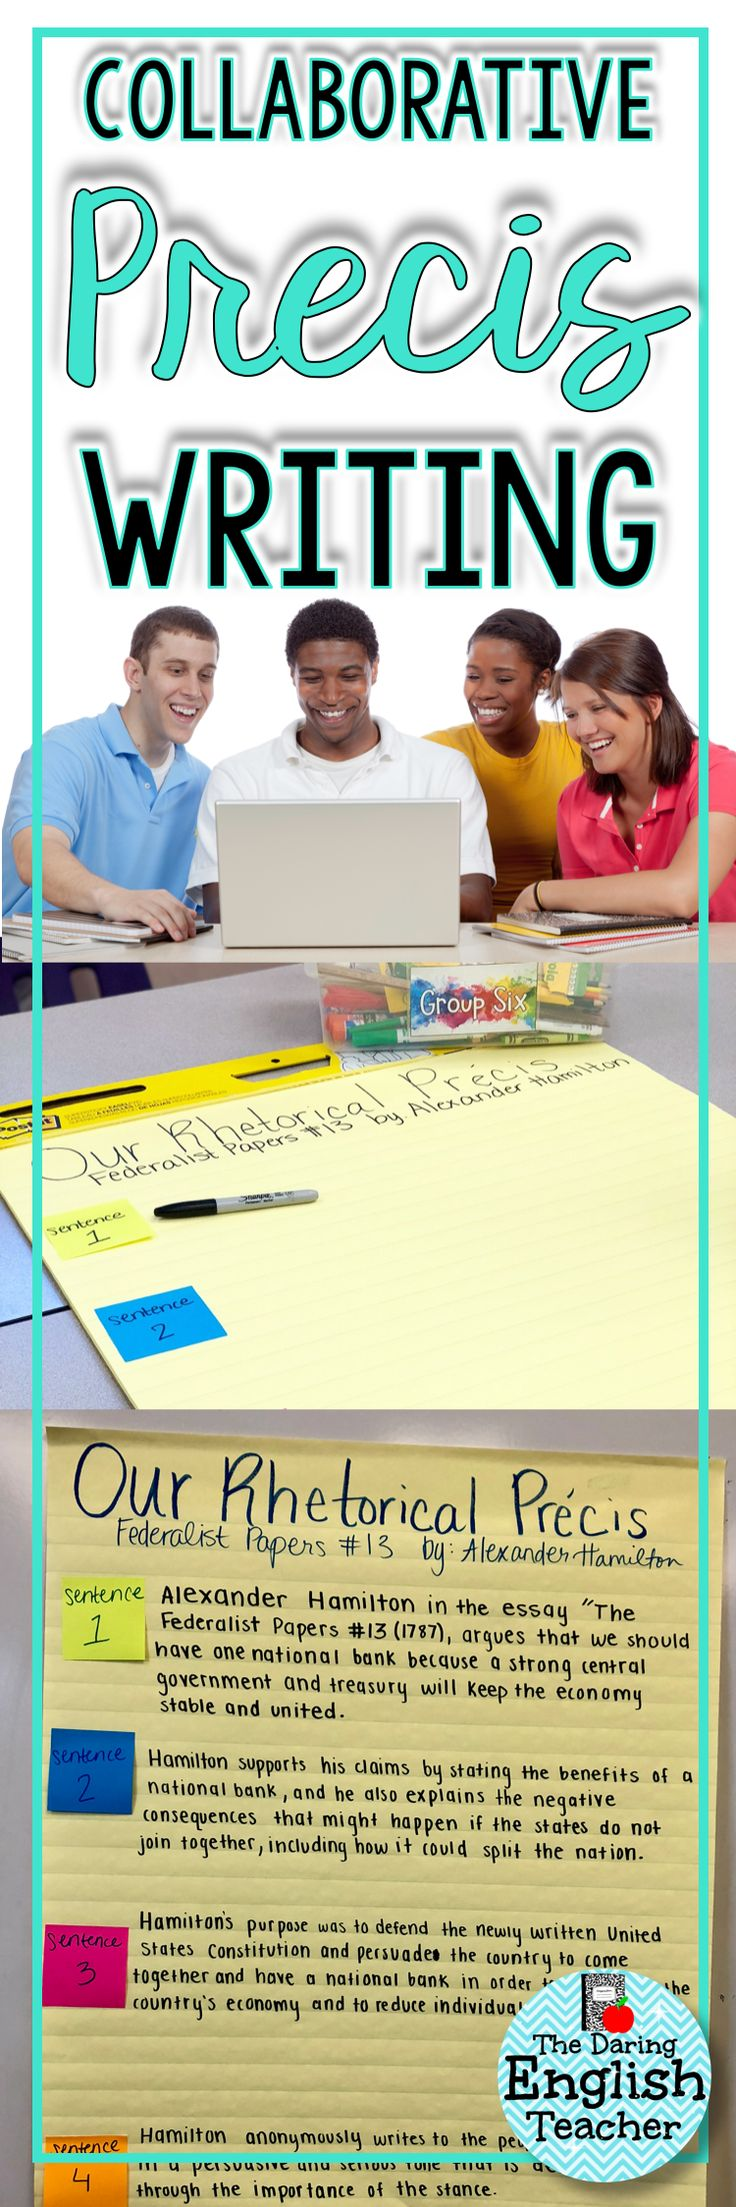 This collaborative précis writing activity is a great way to introduce rhetorical analysis to your students.